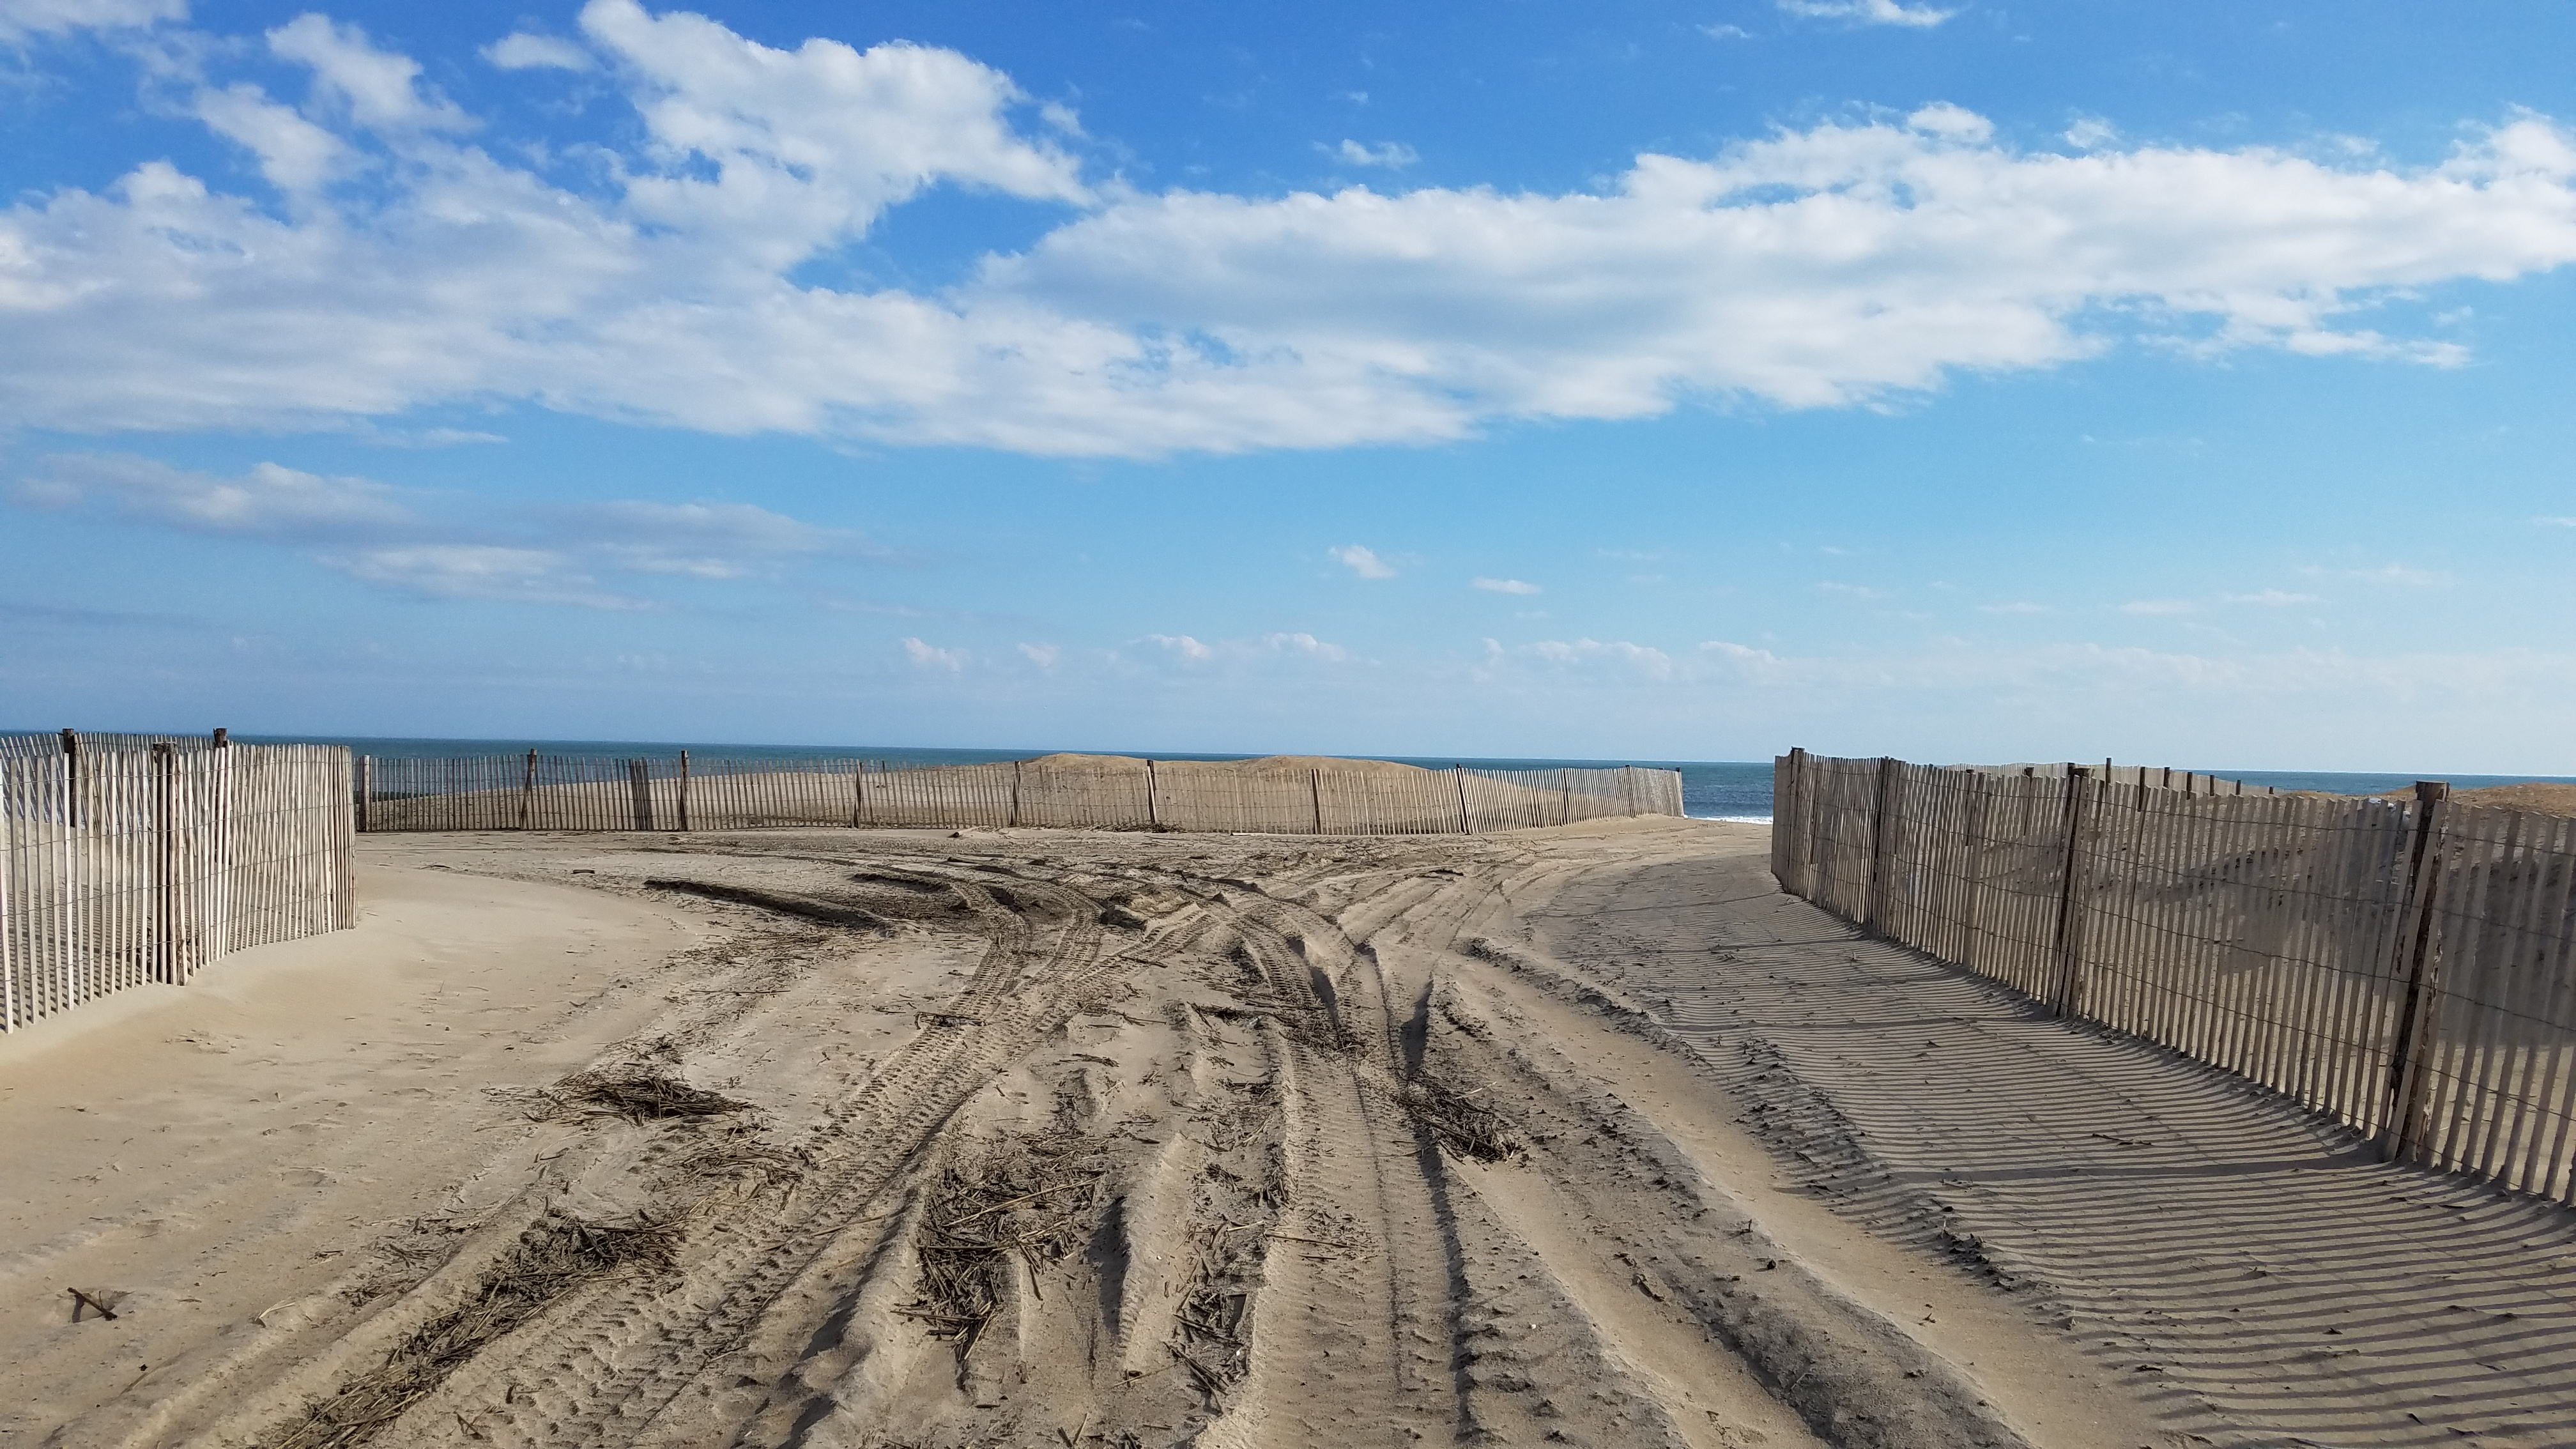 sussex county, fenwick island state park, middle surf fishing crossovver, orv access, drive on beach, bethany beach, dune fence, sand,